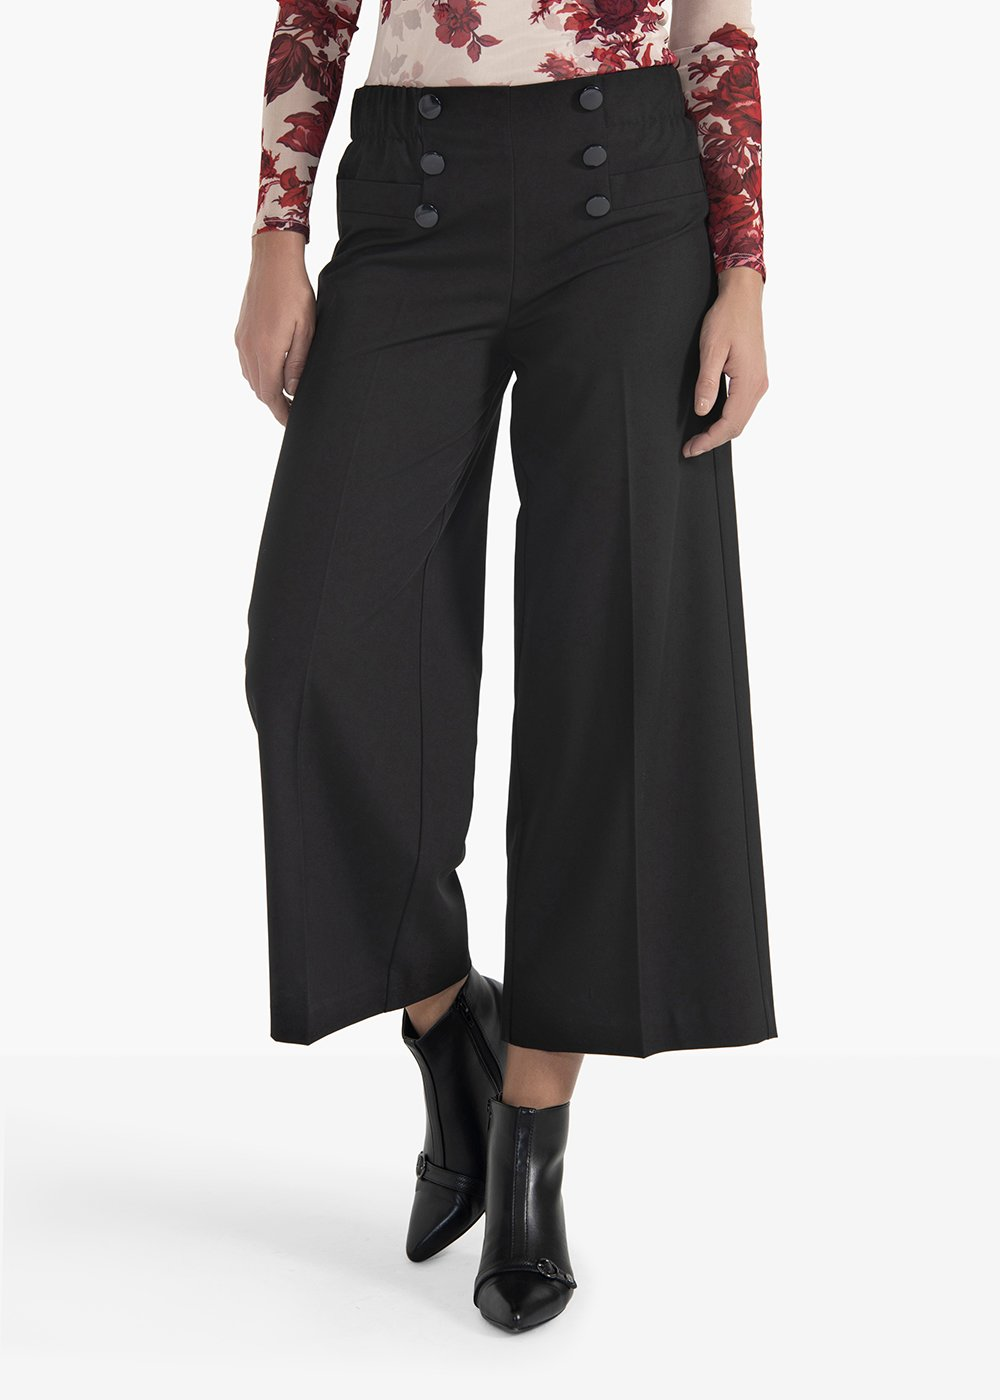 Short palazzo trousers Poel with buttons in weist detail